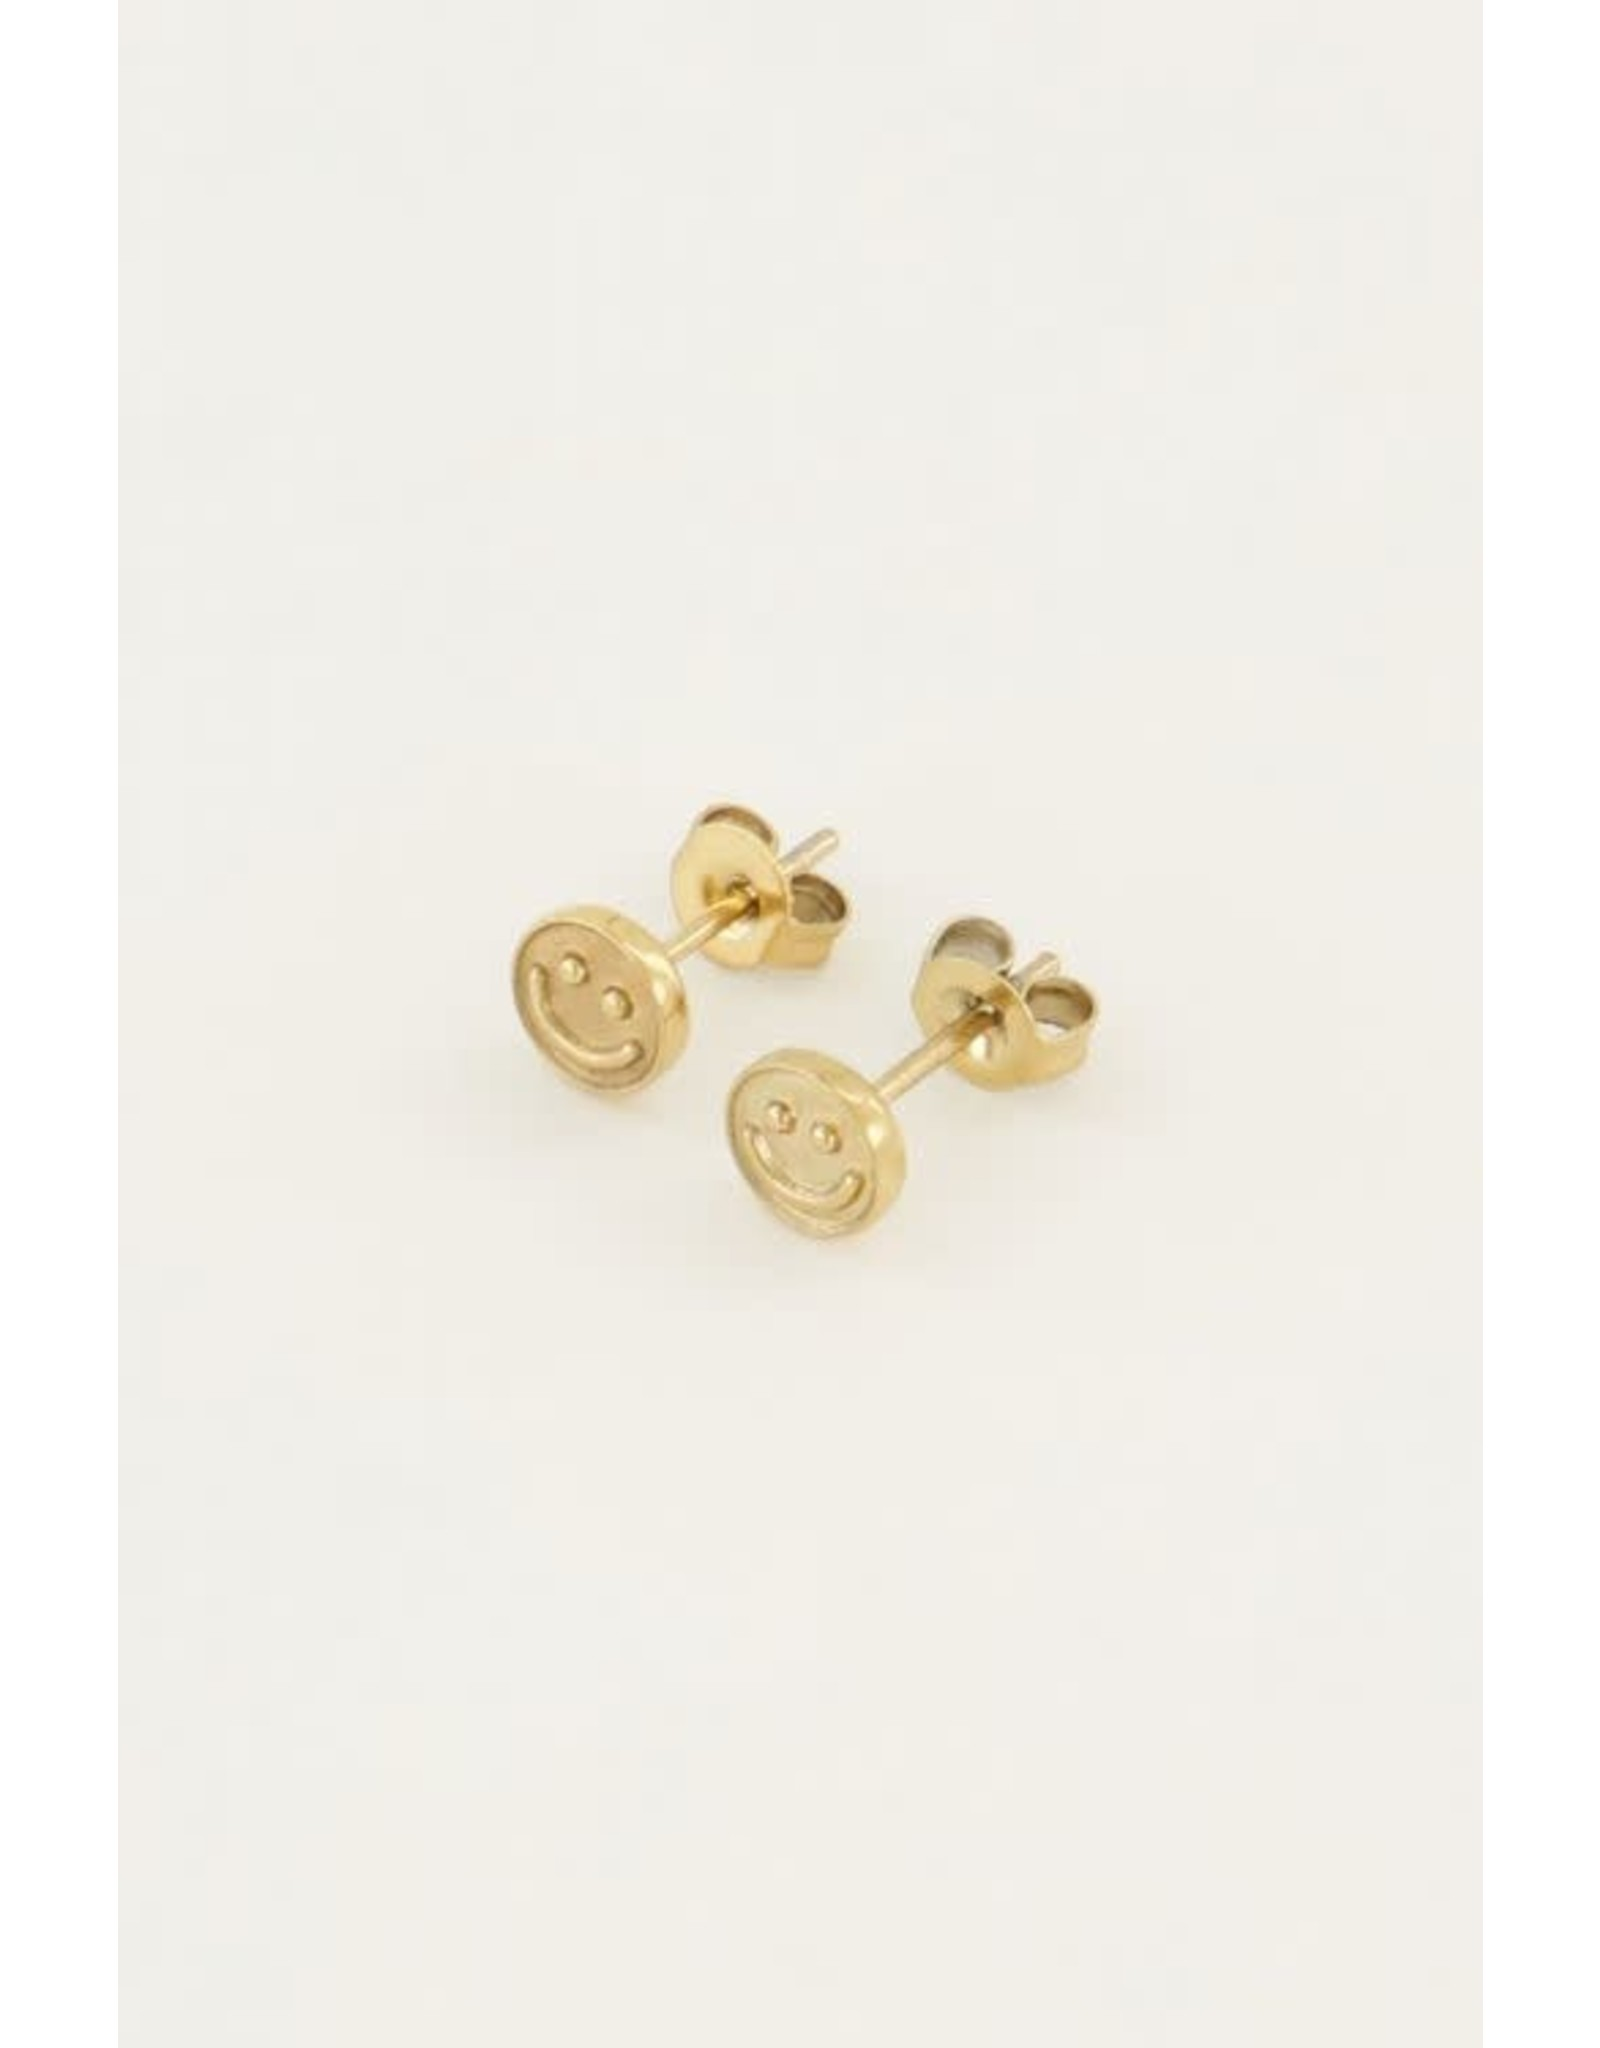 My Jewellery My Jewellery earstuds - smiley